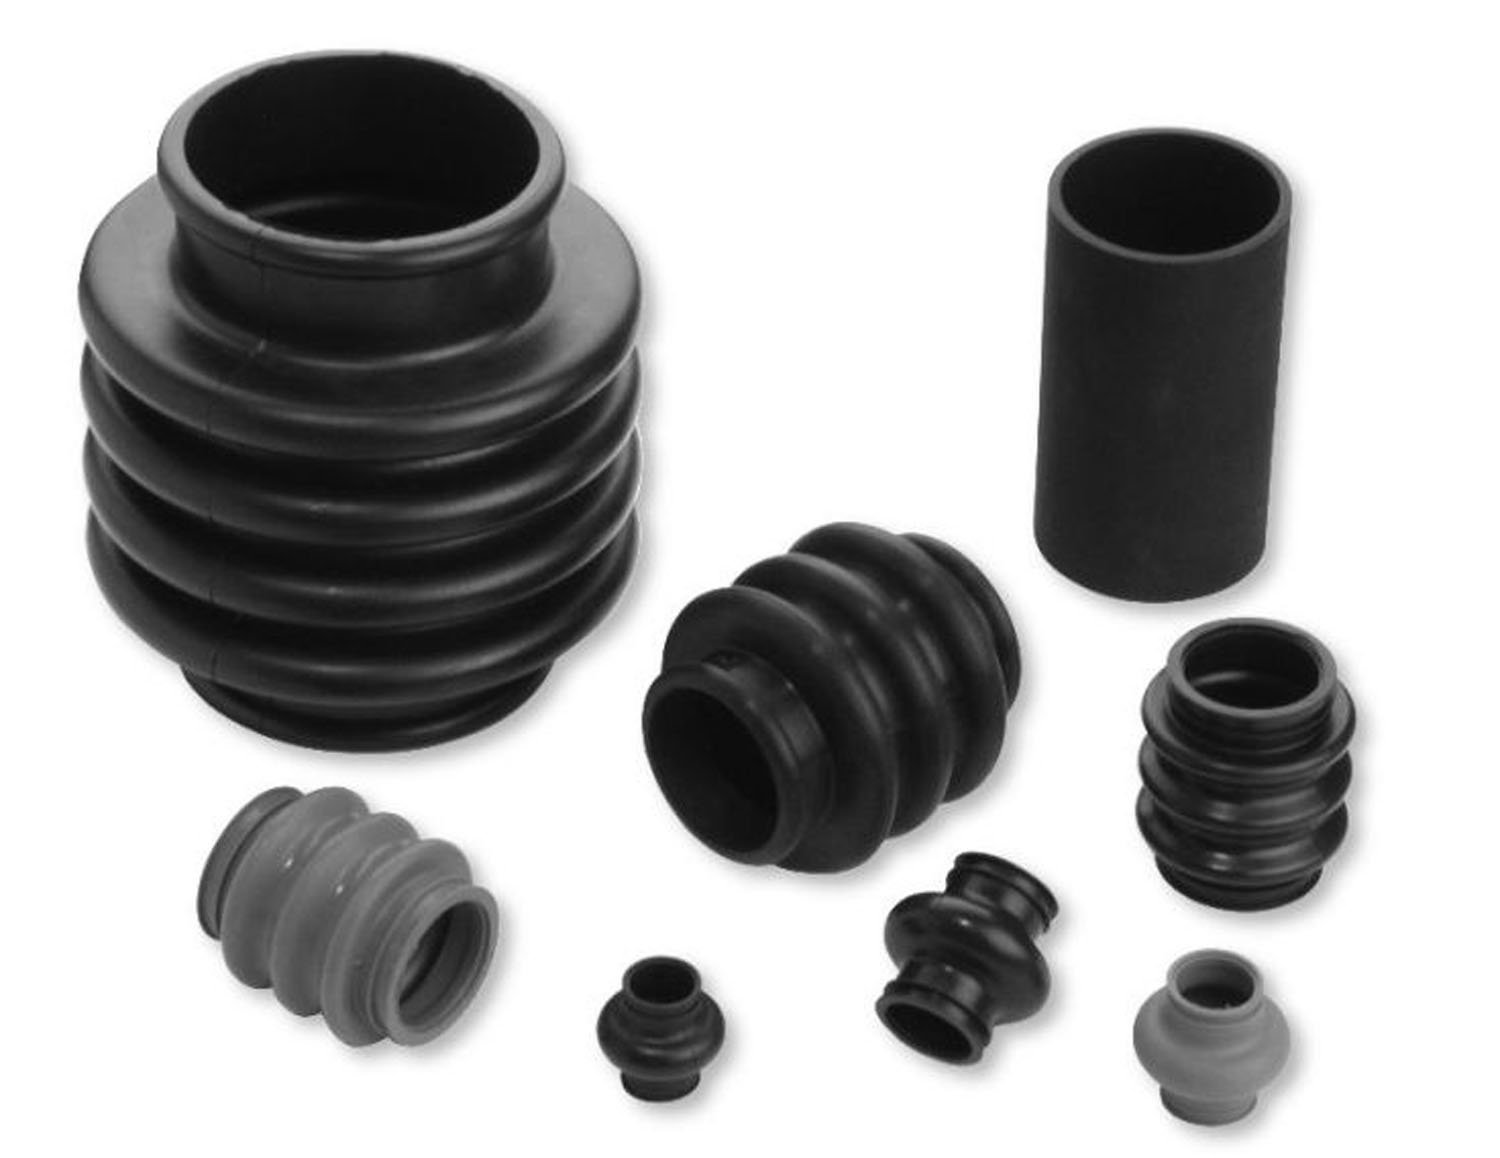 """5//8/"""" Bore Belden UJ-625 Boot Universal Joint Boot Covers Nitrile 1-1//8/"""" OD,"""